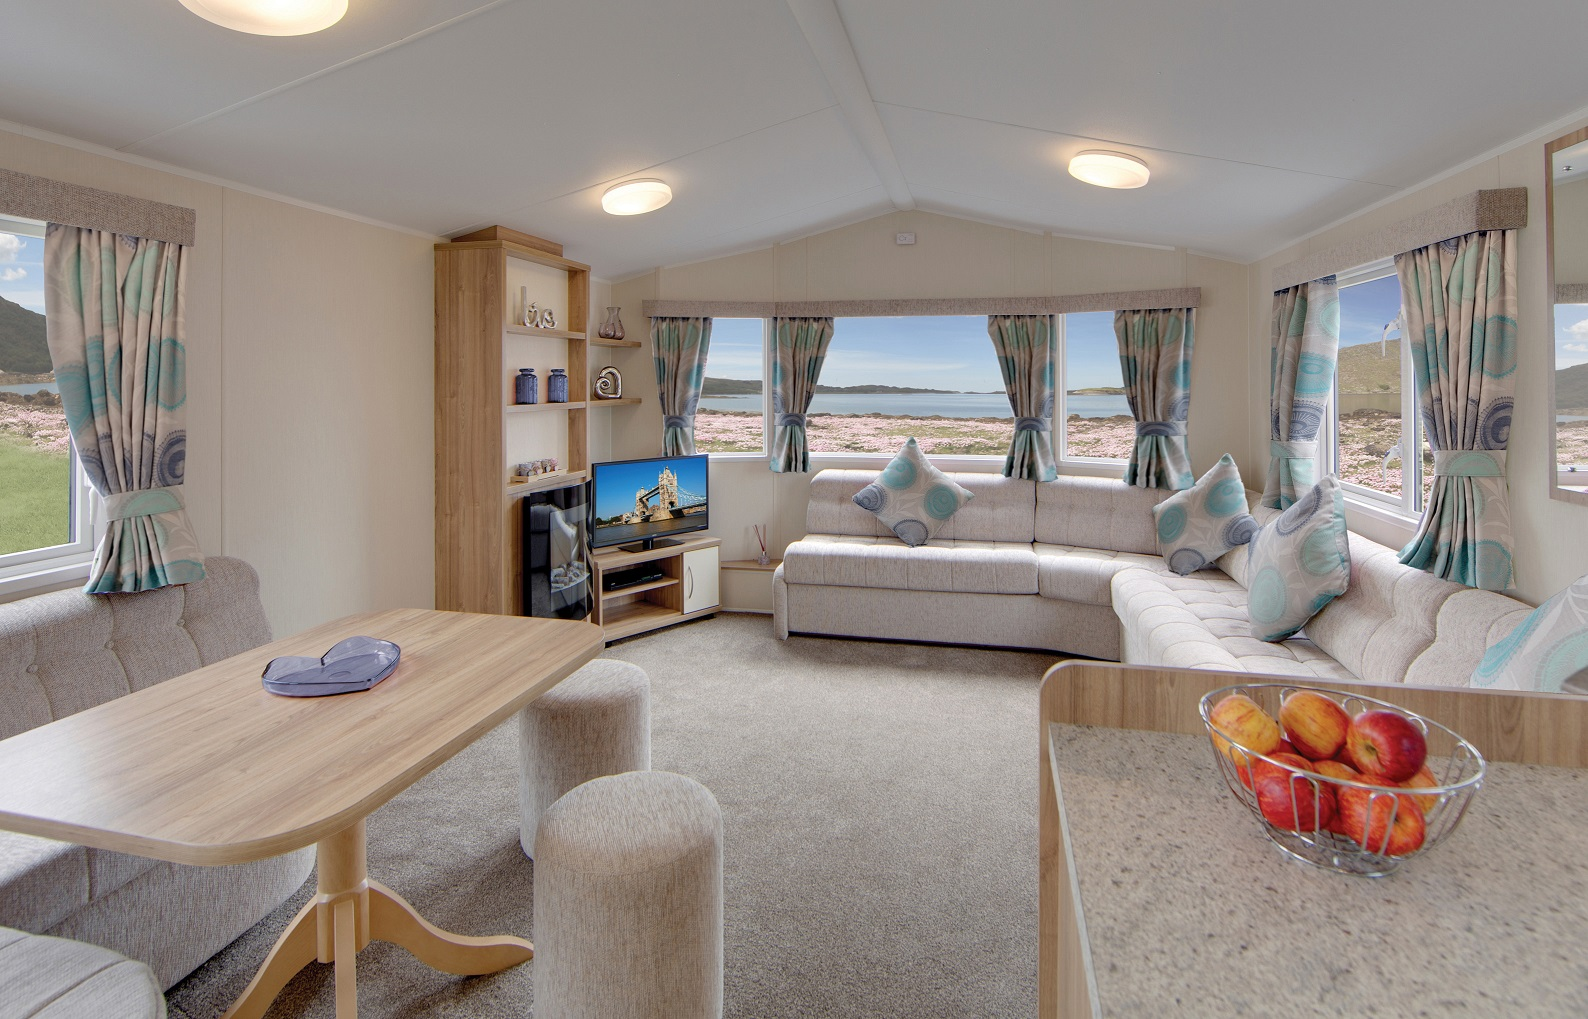 static caravan for sale Seahouses Northumberland ideal caravans Large Image 1